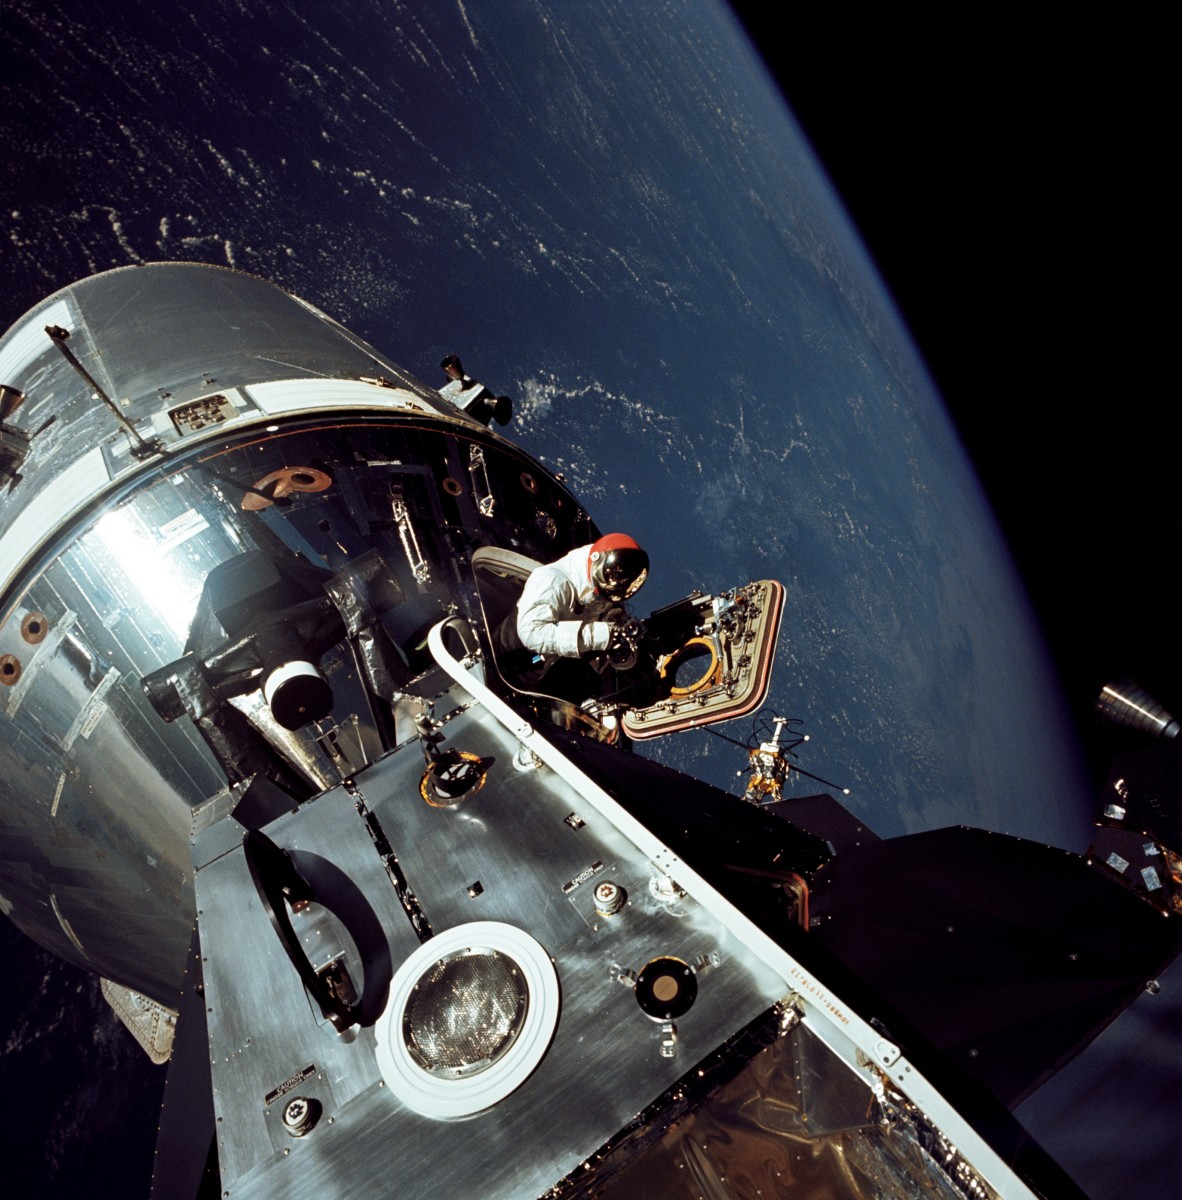 Apollo 9 astronaut Dave Scott photographed on March 6, 1969. His crewmate Rusty Schweickart, lunar module pilot, took this photograph from the porch of the lunar module.